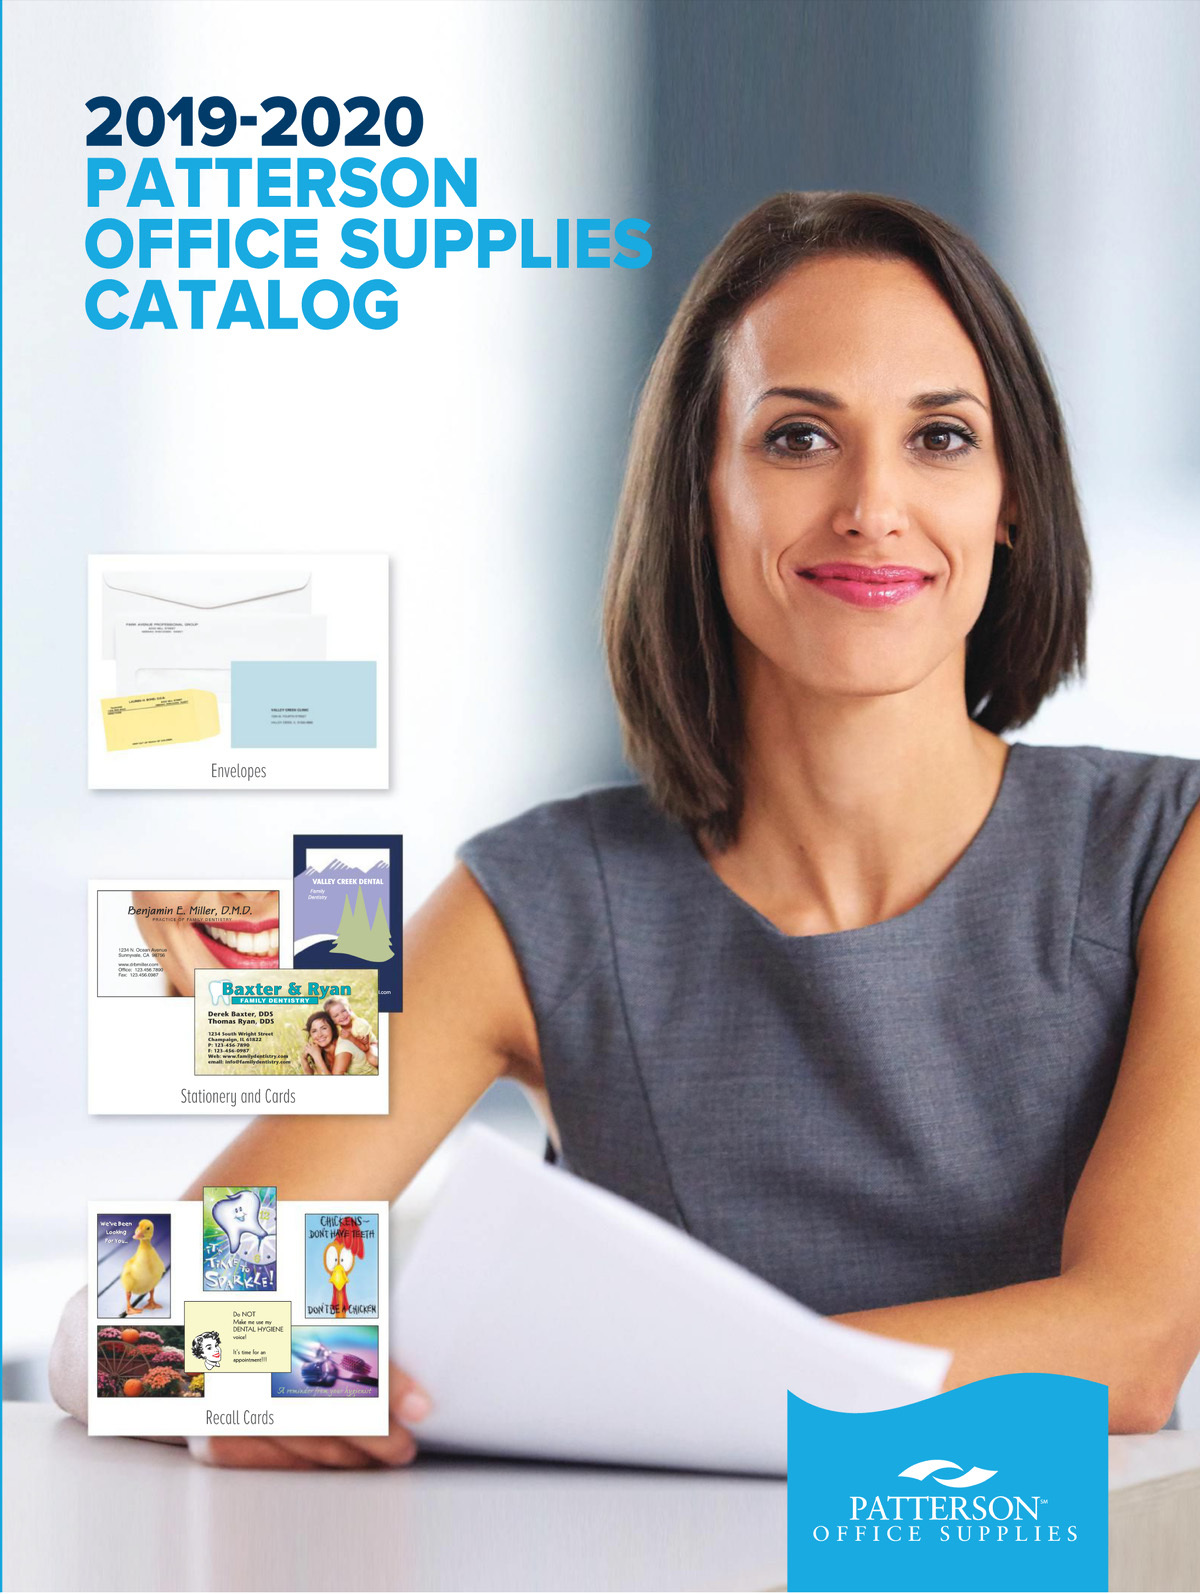 Patterson 2019 2020 Office Supplies Catalog